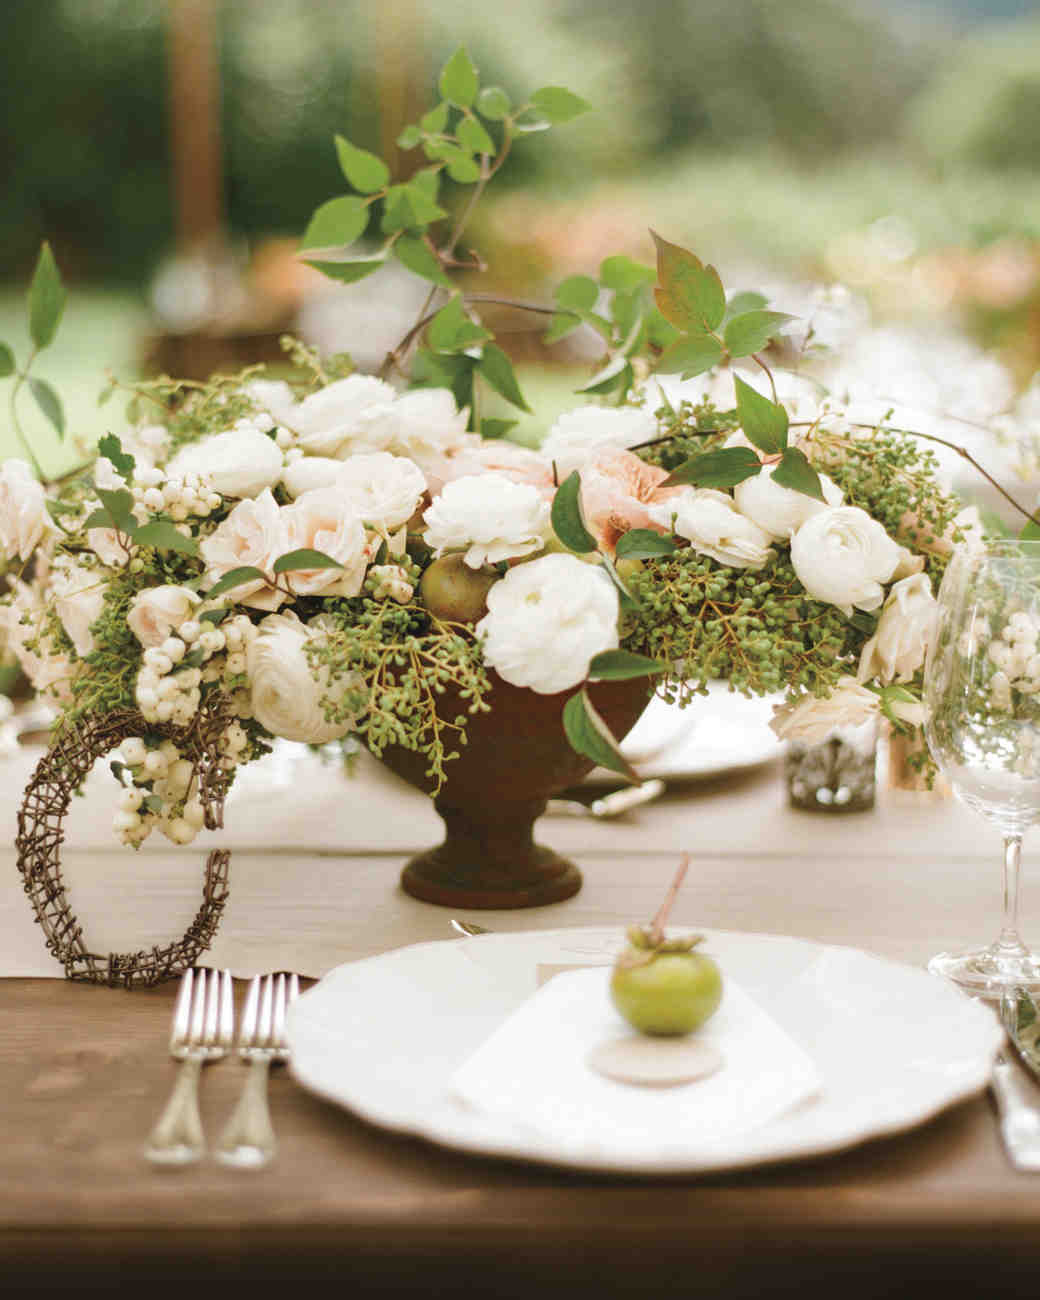 lauren-conor-tablescape-mwds109822.jpg